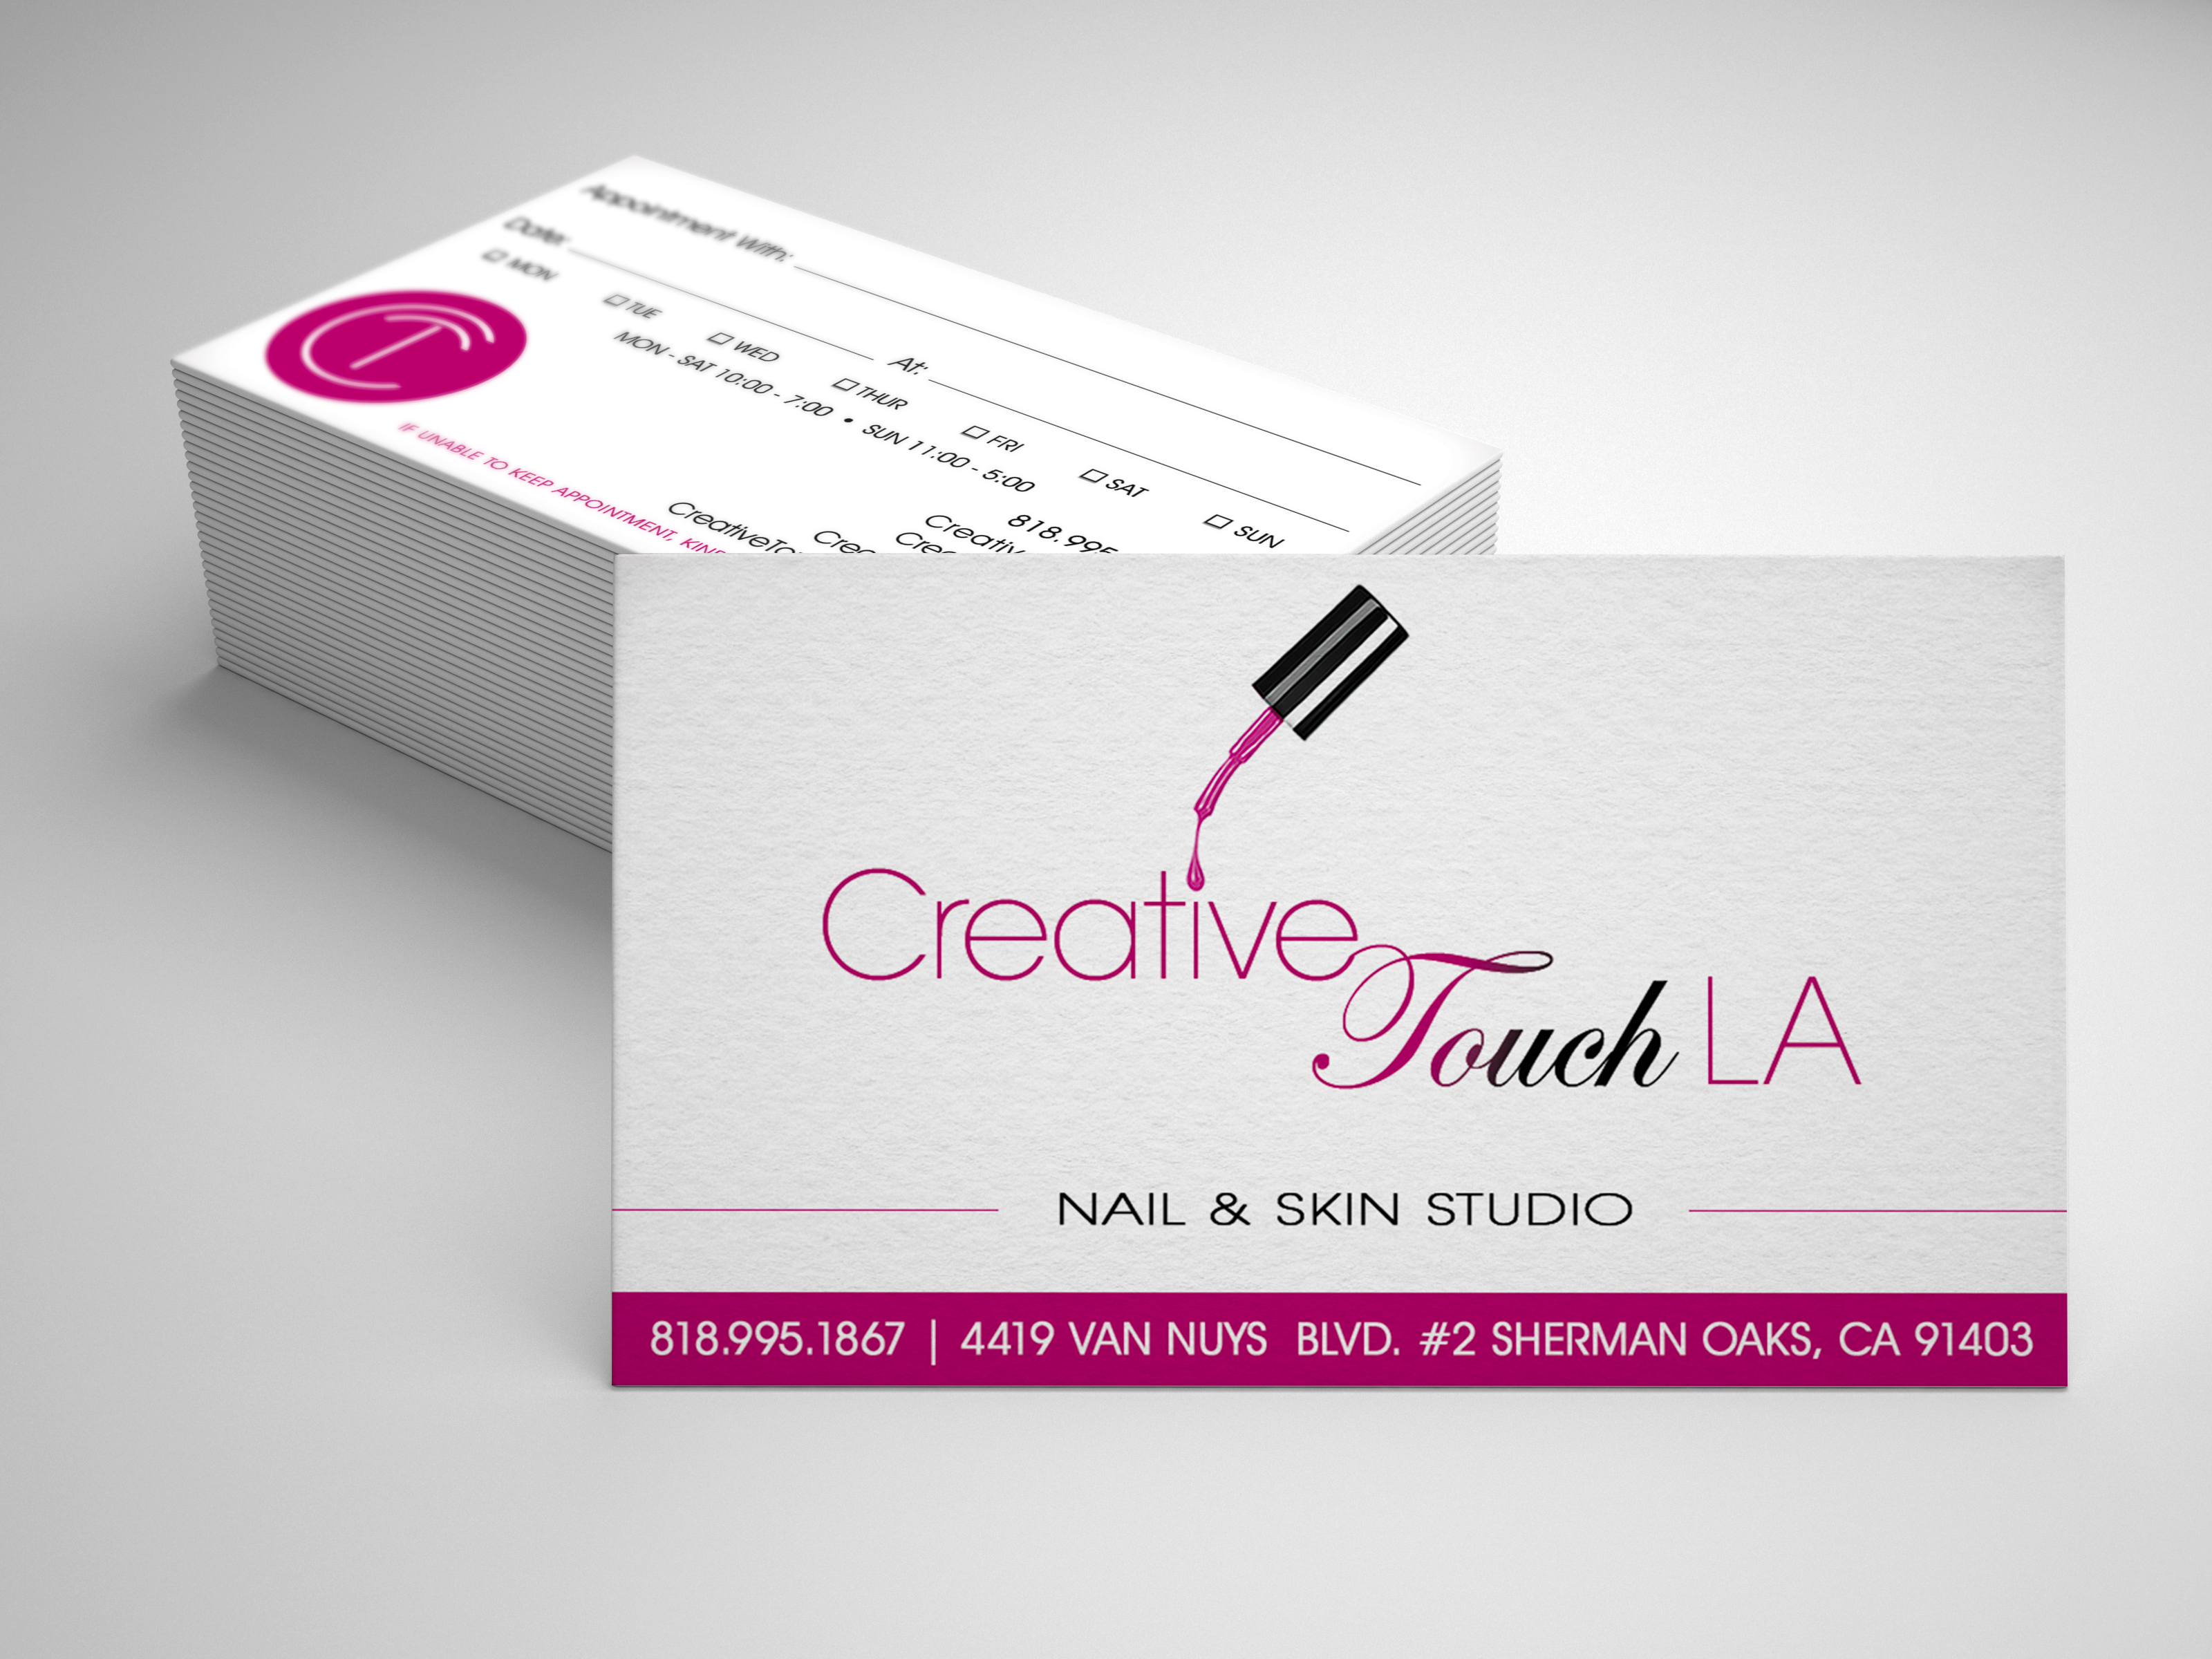 Creative Touch Business Cards A Design Intended To Celebrate The Timeless Importance Of Nail Care Natural Nail Care Nail Care Business Card Design